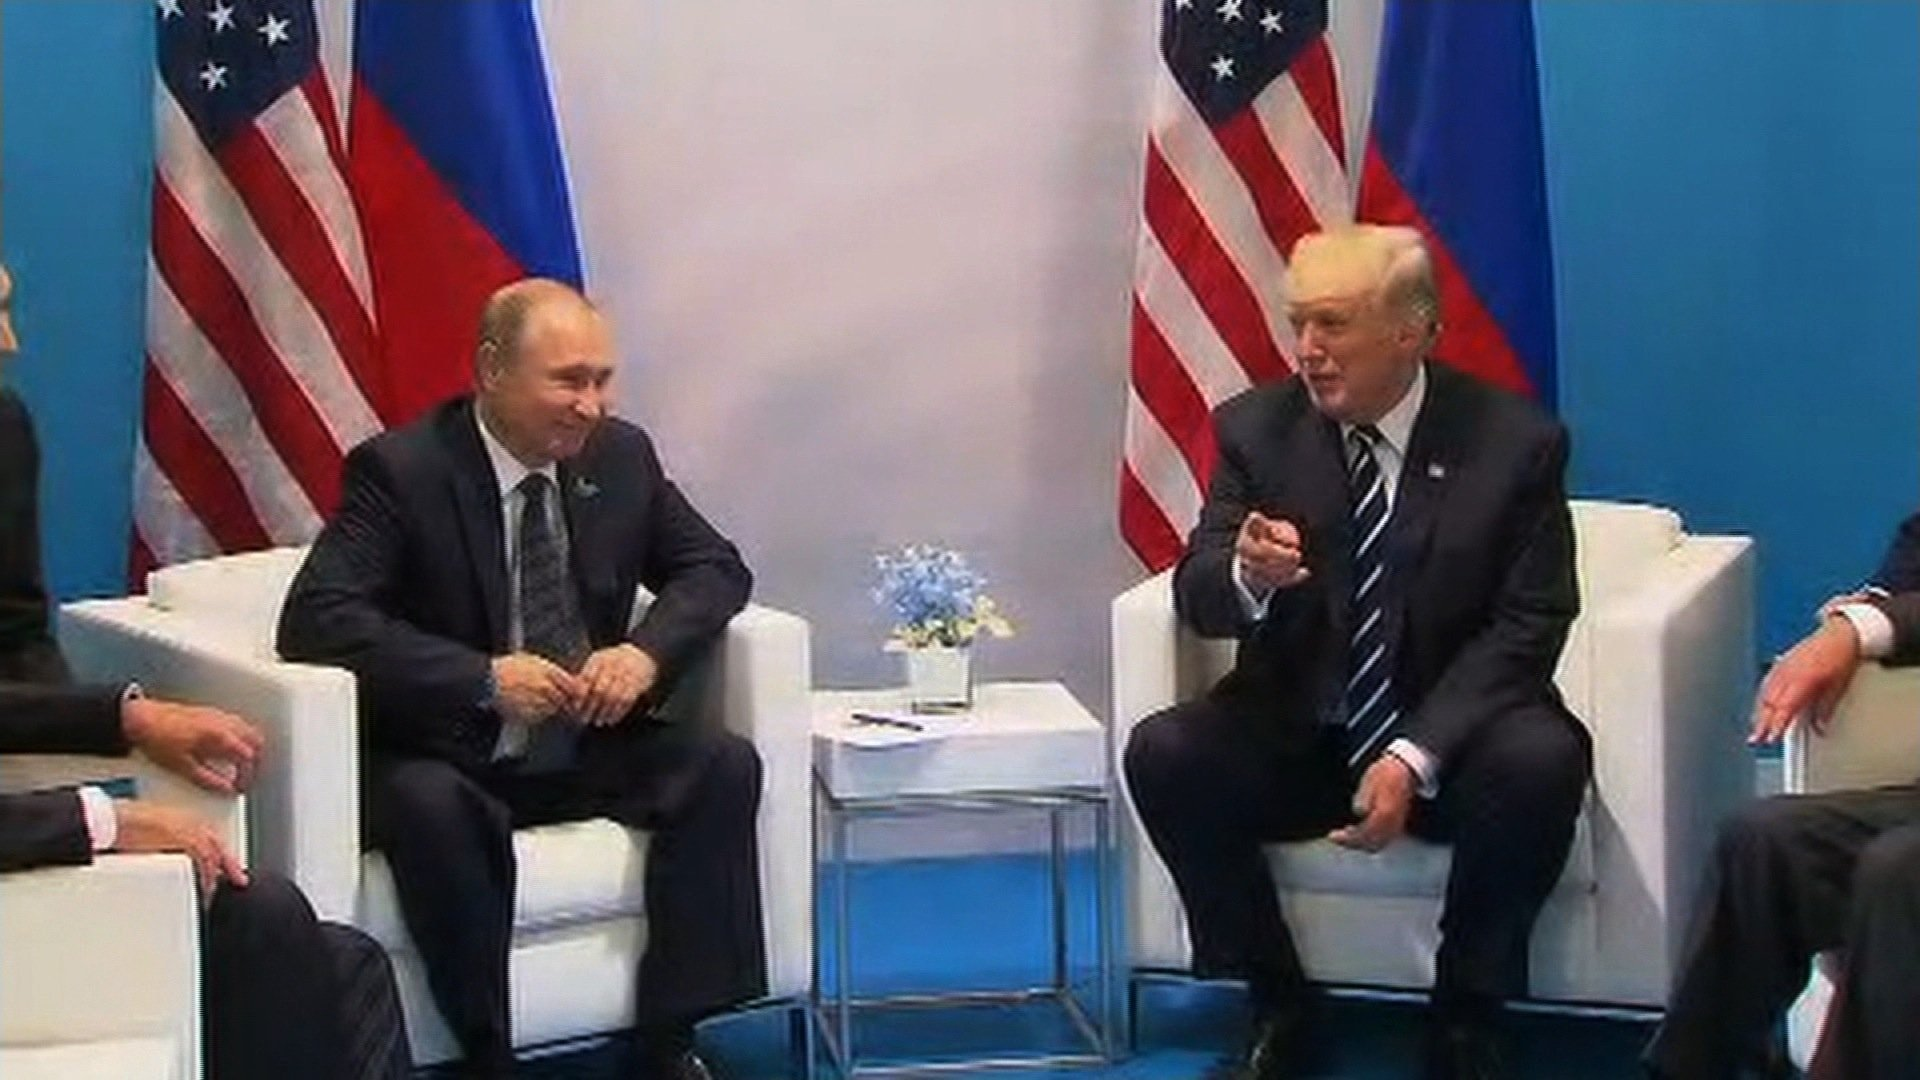 President Donald Trump told reporters he changed the subject with Russian President Vladimir Putin during their meeting during the G20 after pressing him repeatedly about the country's role in meddling in the 2016 US election